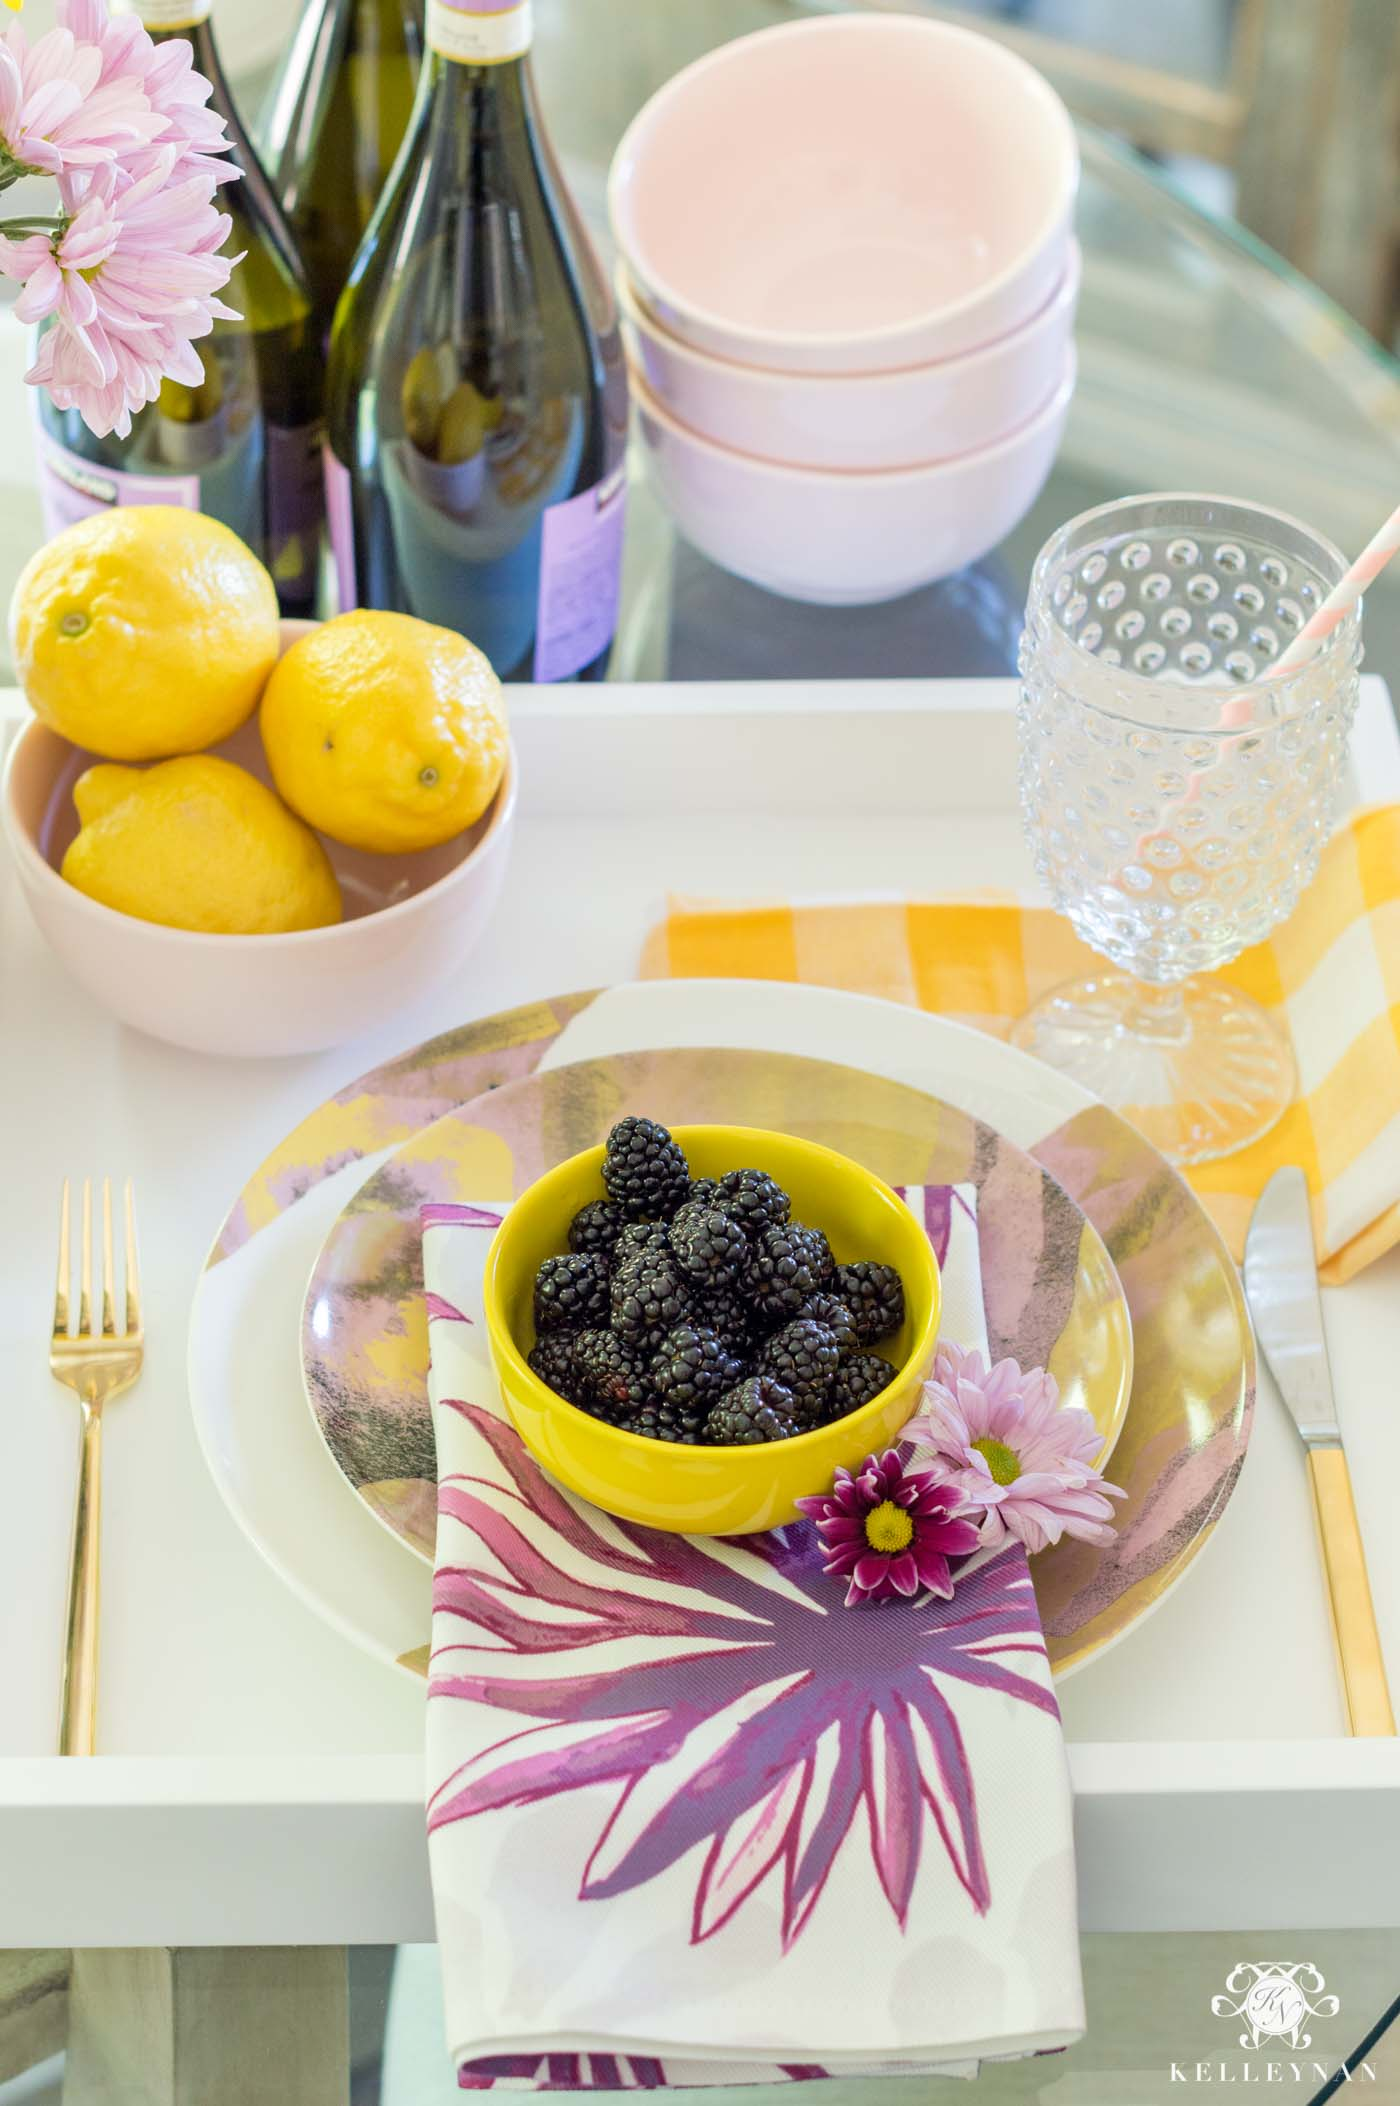 Drew Barrymore Flower Line Favorites- yellow and purple party favorites